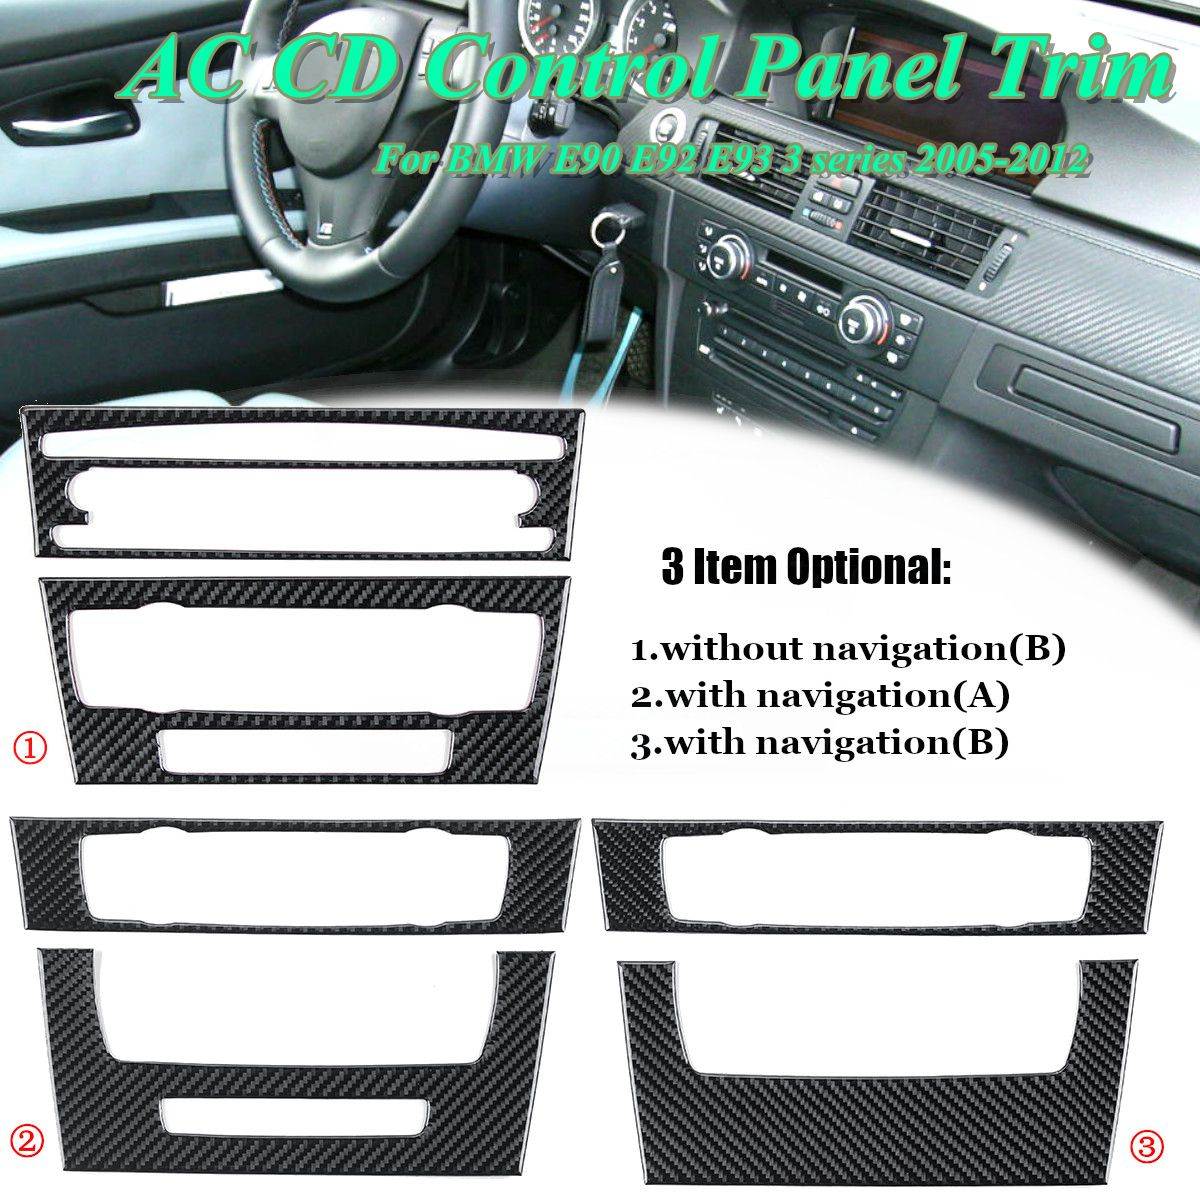 Car Air Conditioning CD Control Panel Trim Carbon Fiber Decoration for BMW E90 E92 E93 3 Series Interior Accessories Car styling car styling stainless steel interior trim air conditioning cd control panel decoration cover for bmw x3 f25 x4 f26 accessories